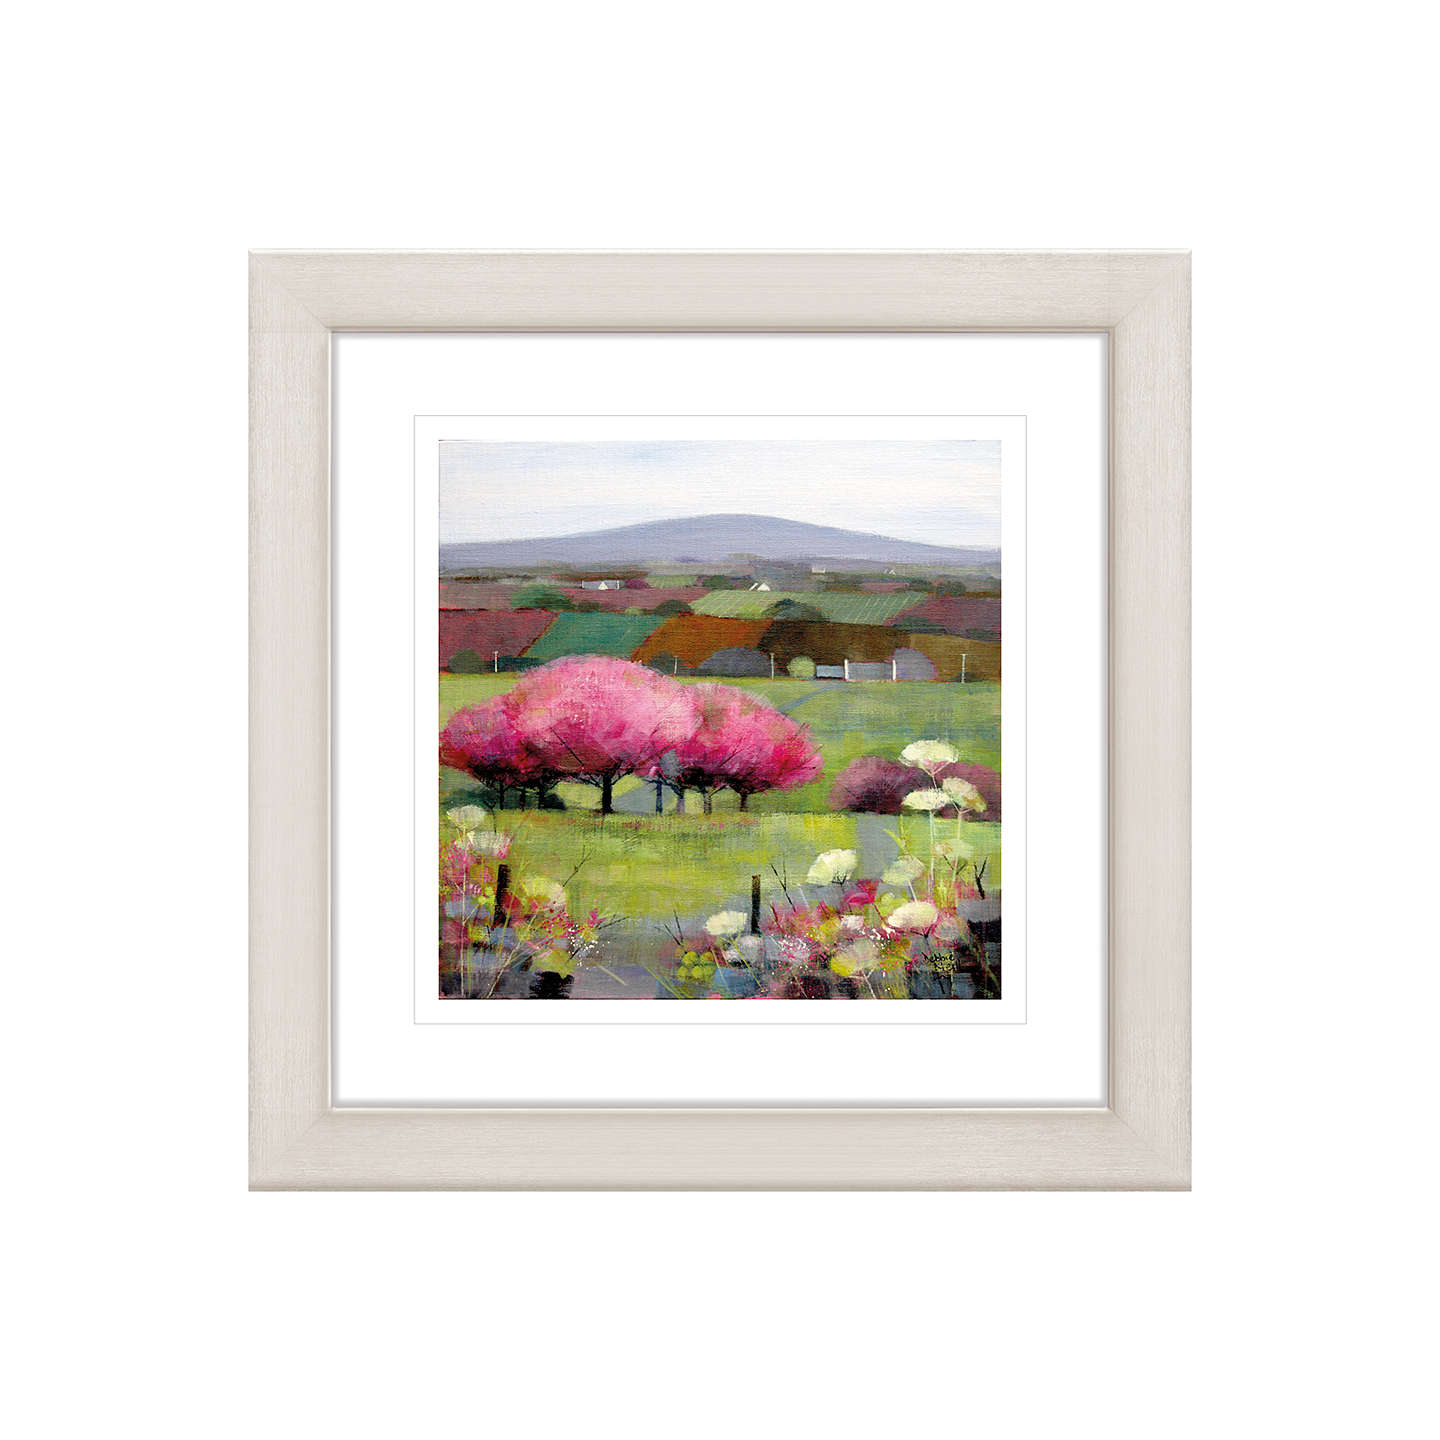 BuyDebbie Neill - Time for Cherry Blossom Framed Print, 57 x 57cm Online at johnlewis.com